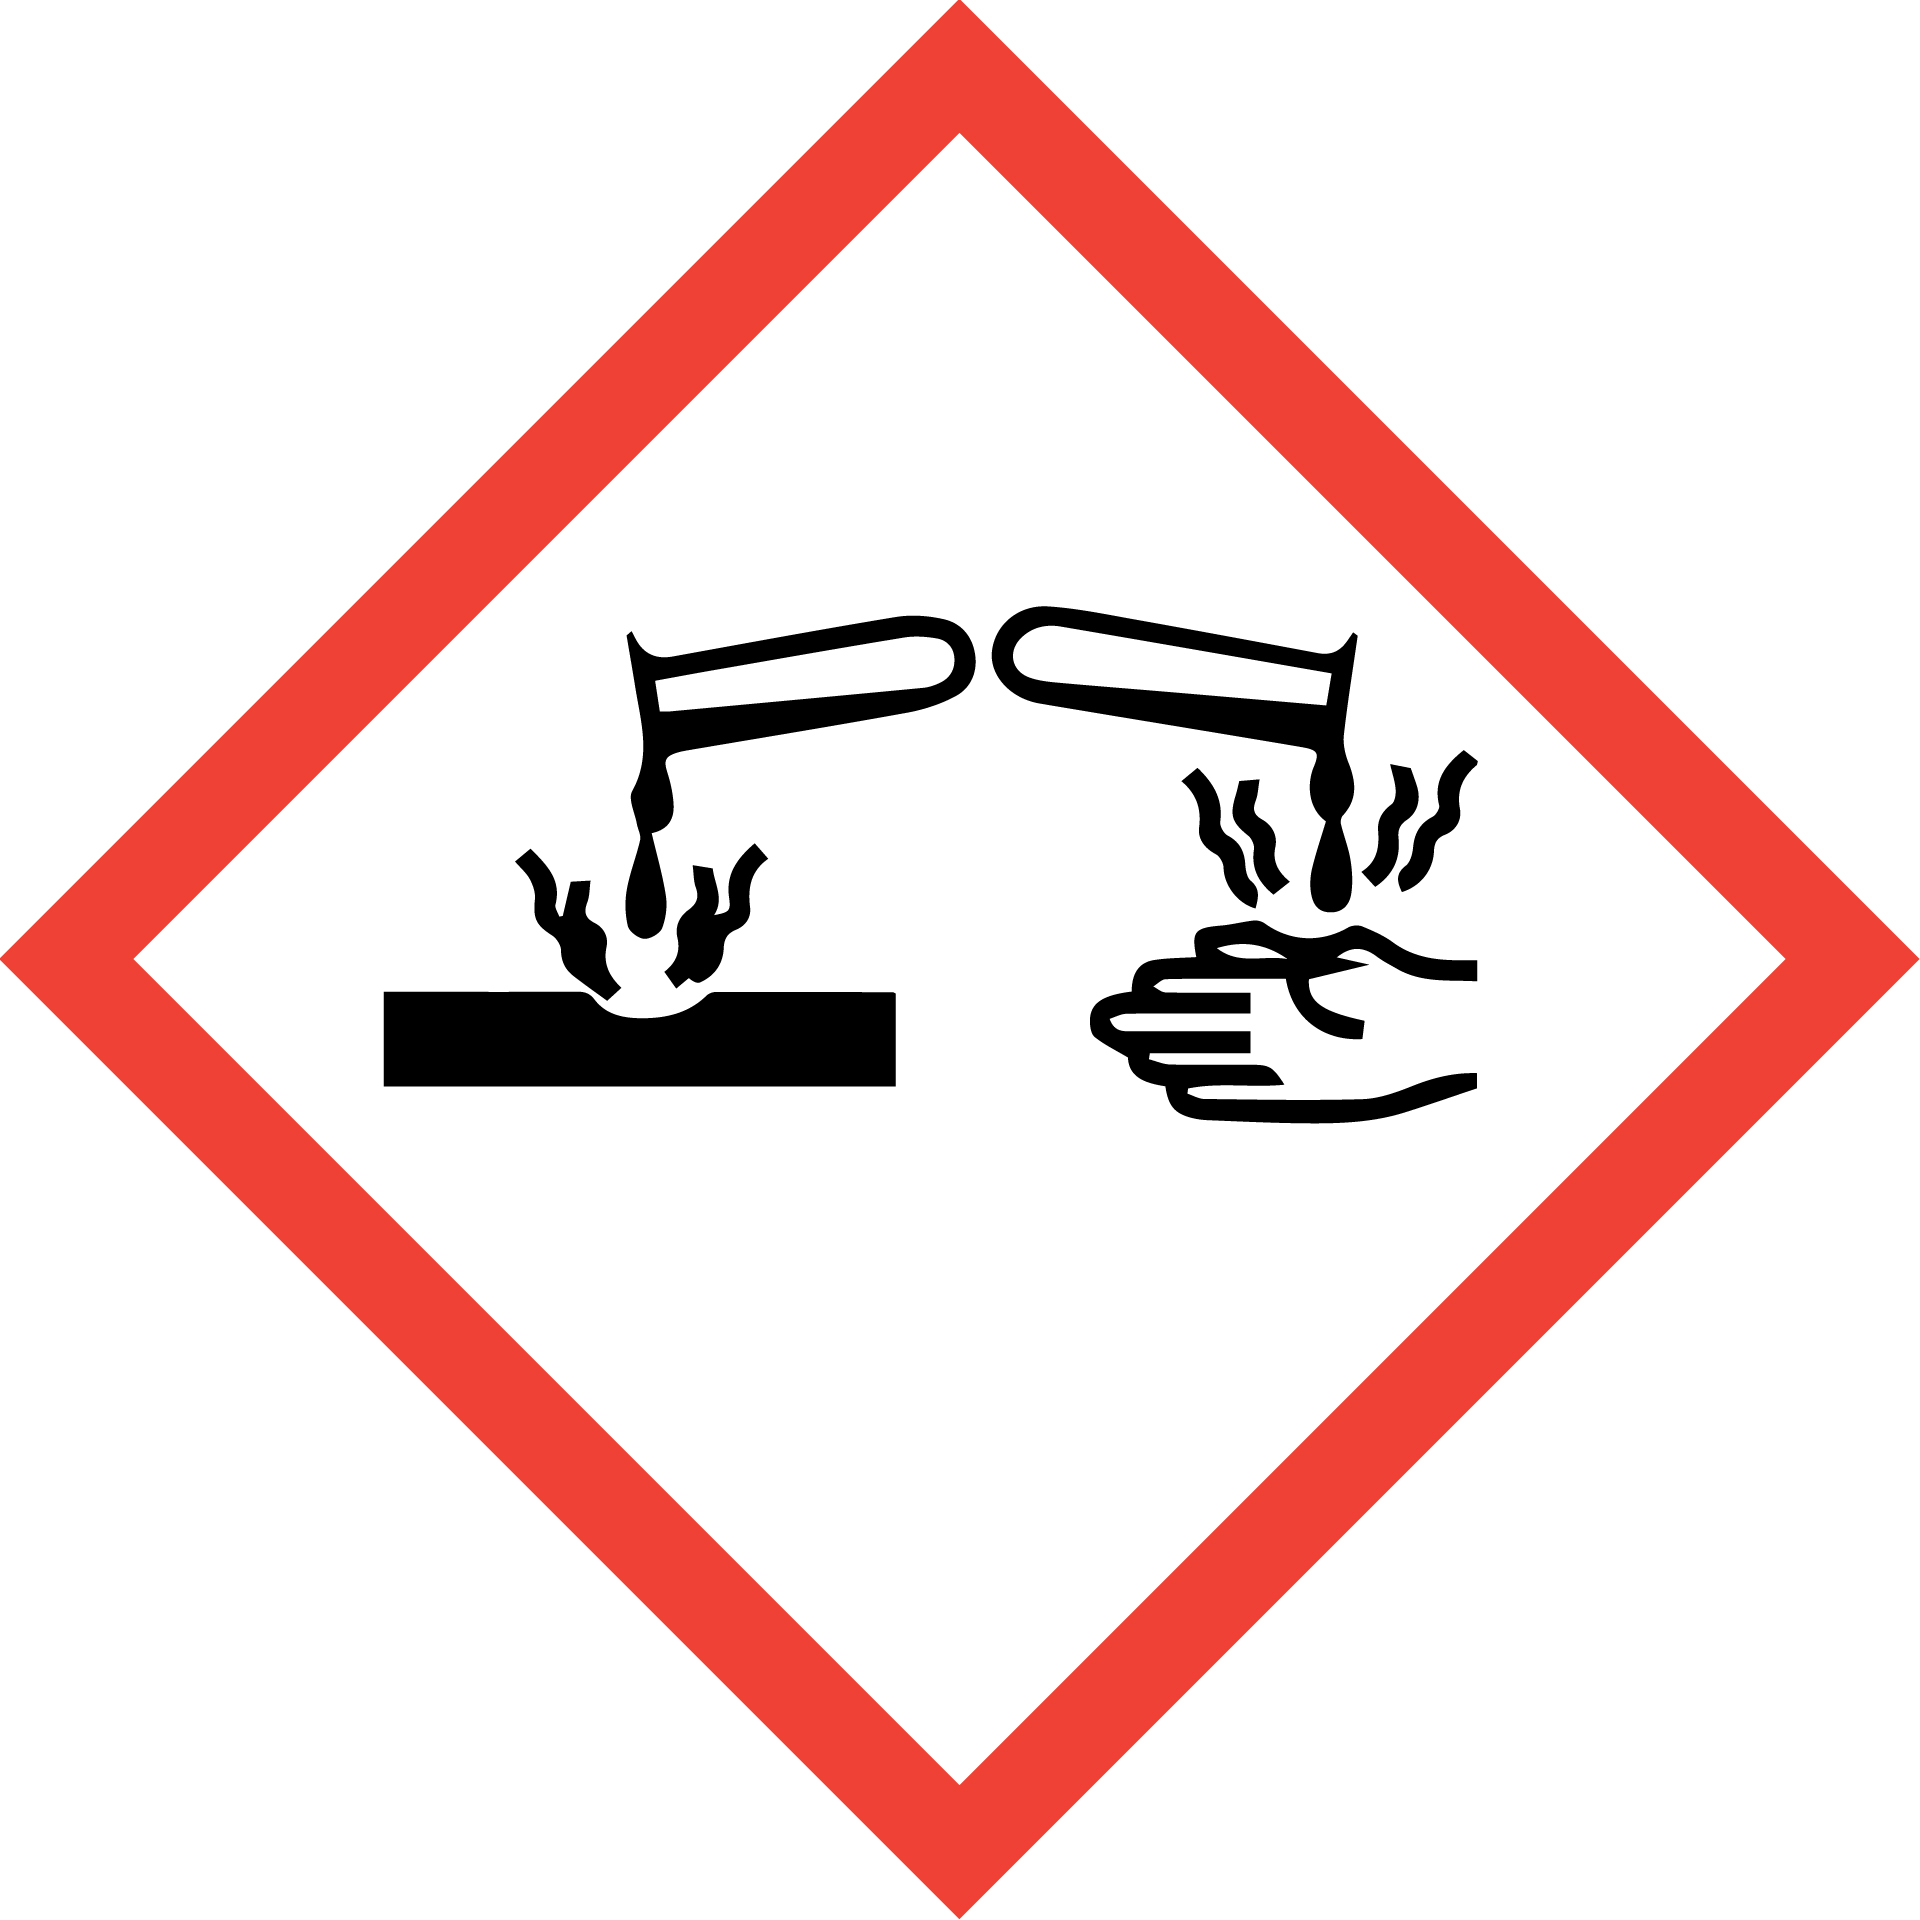 Chemical symbol for severe skin burns and eye damage